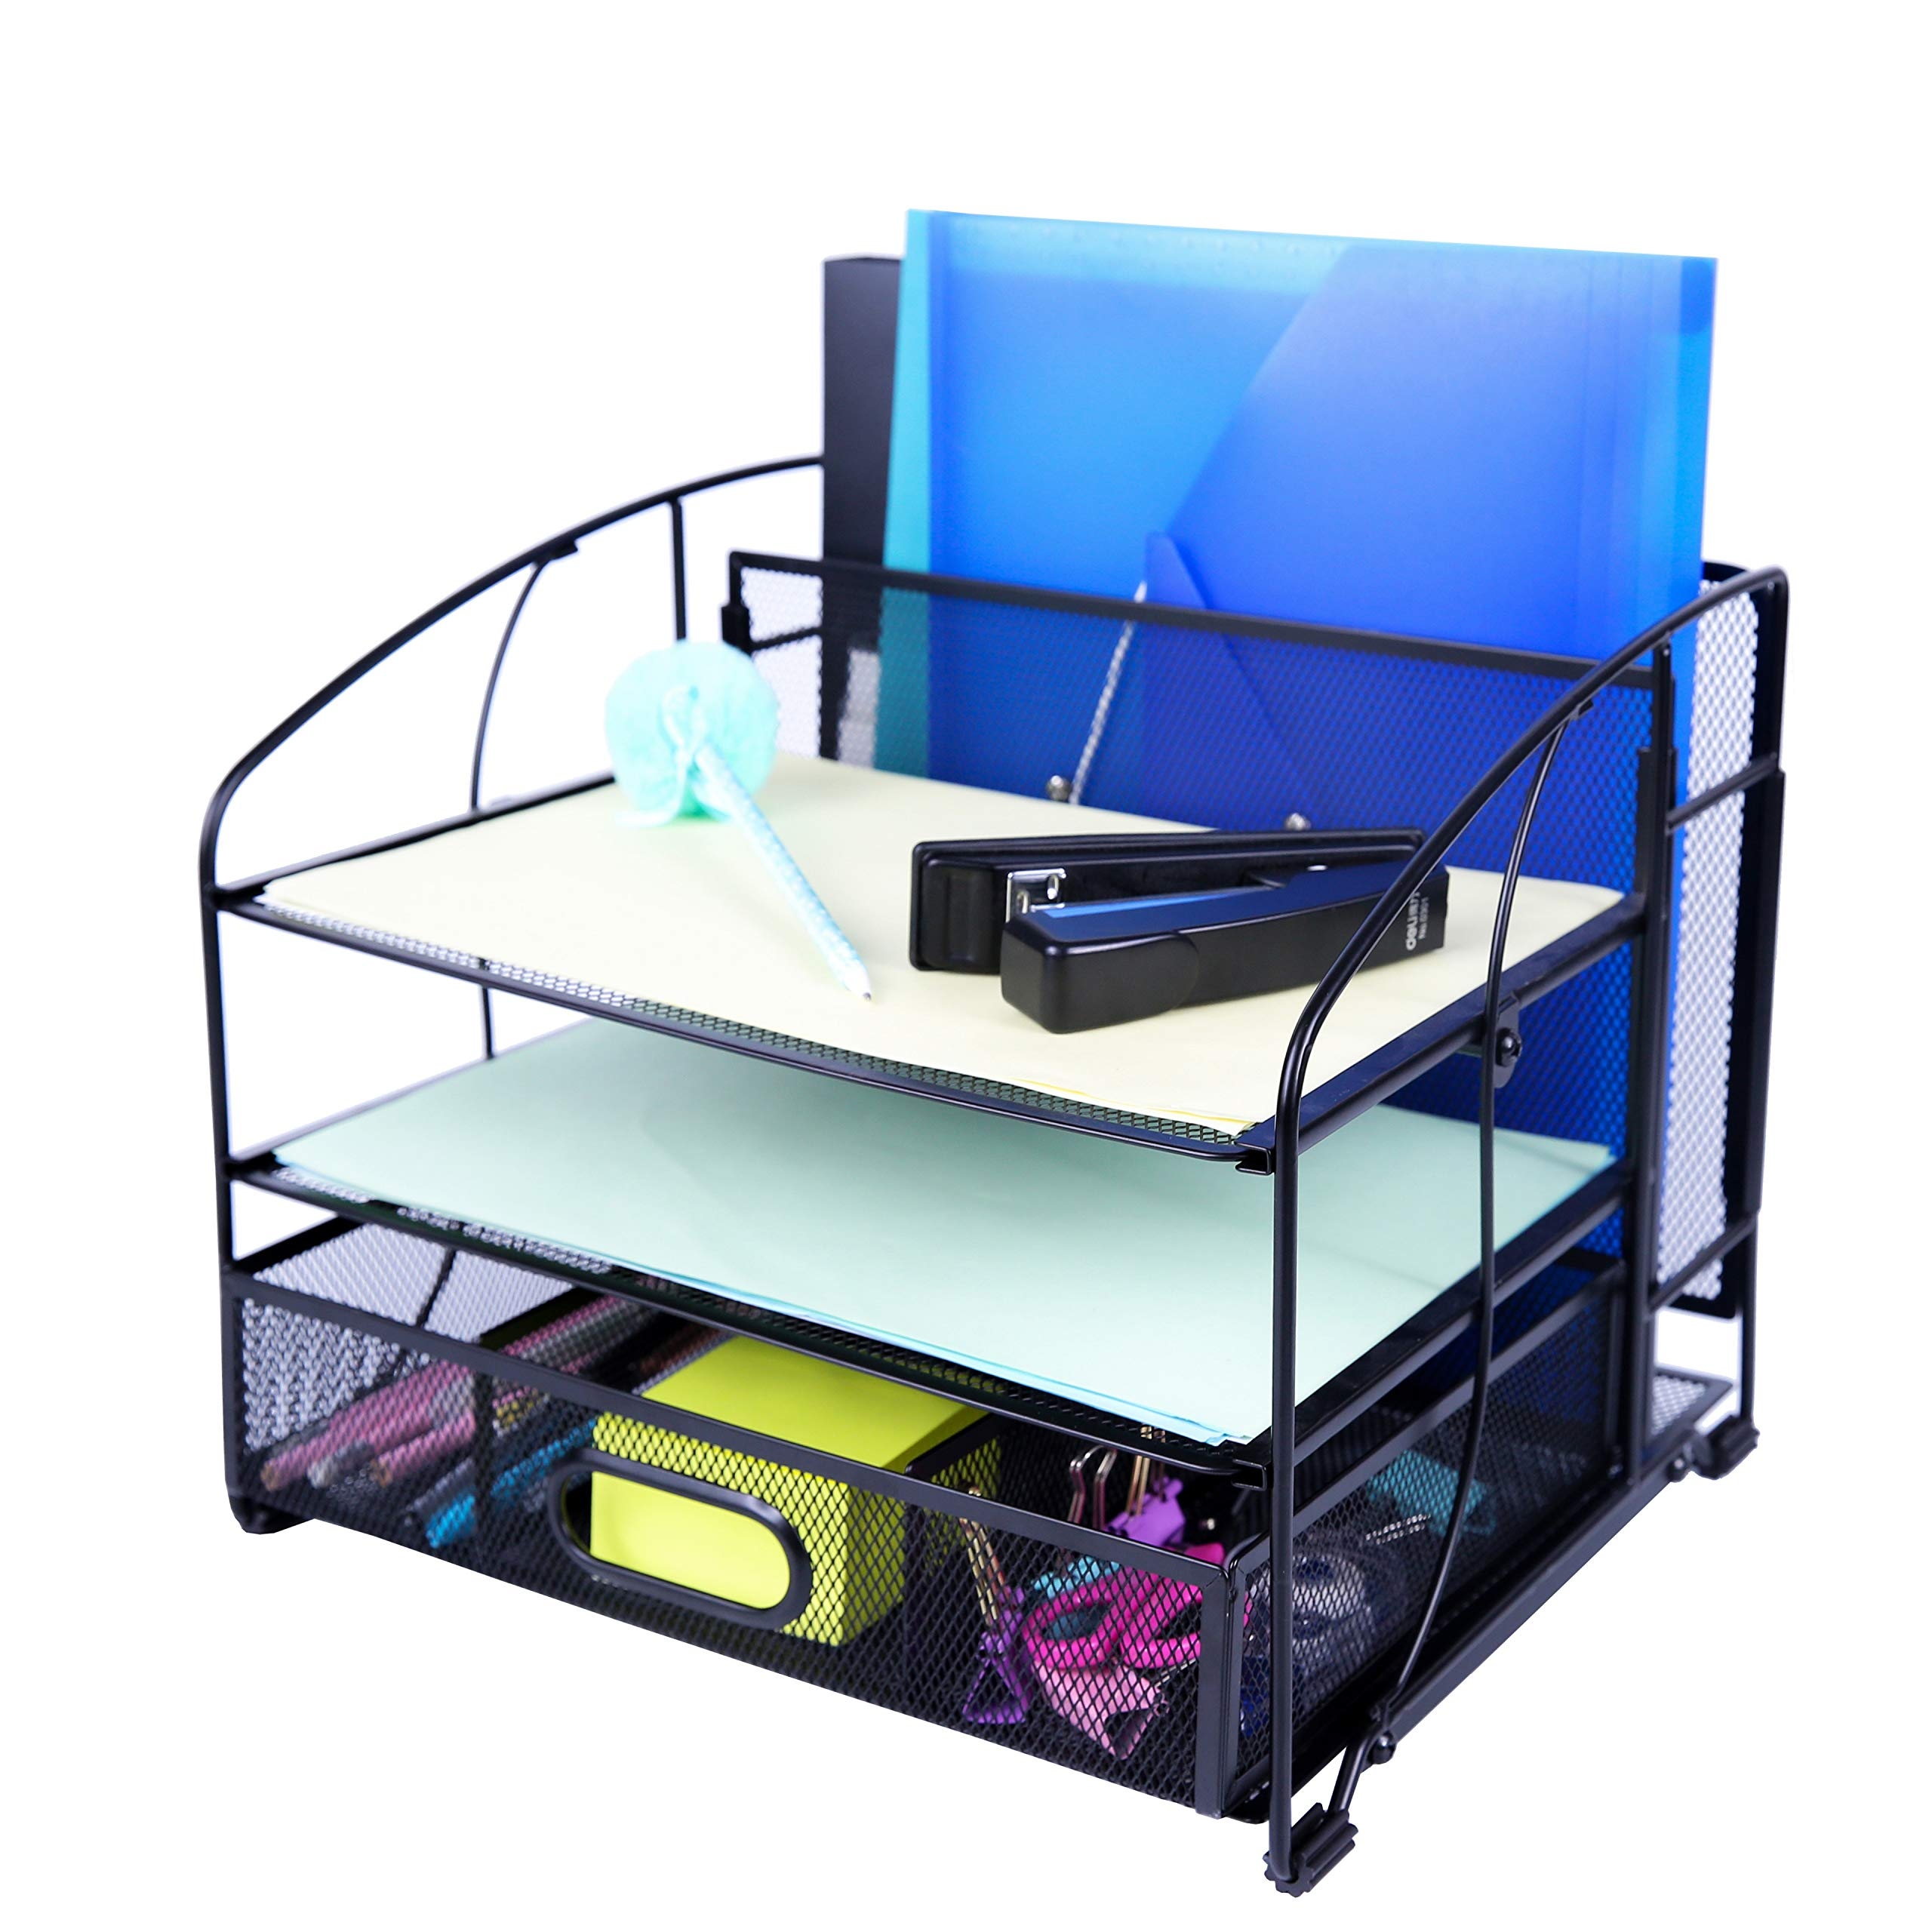 Exerz Mesh Desk Organizer Office Supplies 3 Trays/Desktop File Holder with Sliding Drawer and Hanging File Holder/Vertical Upright Section for Office Home Multifuntional - Black